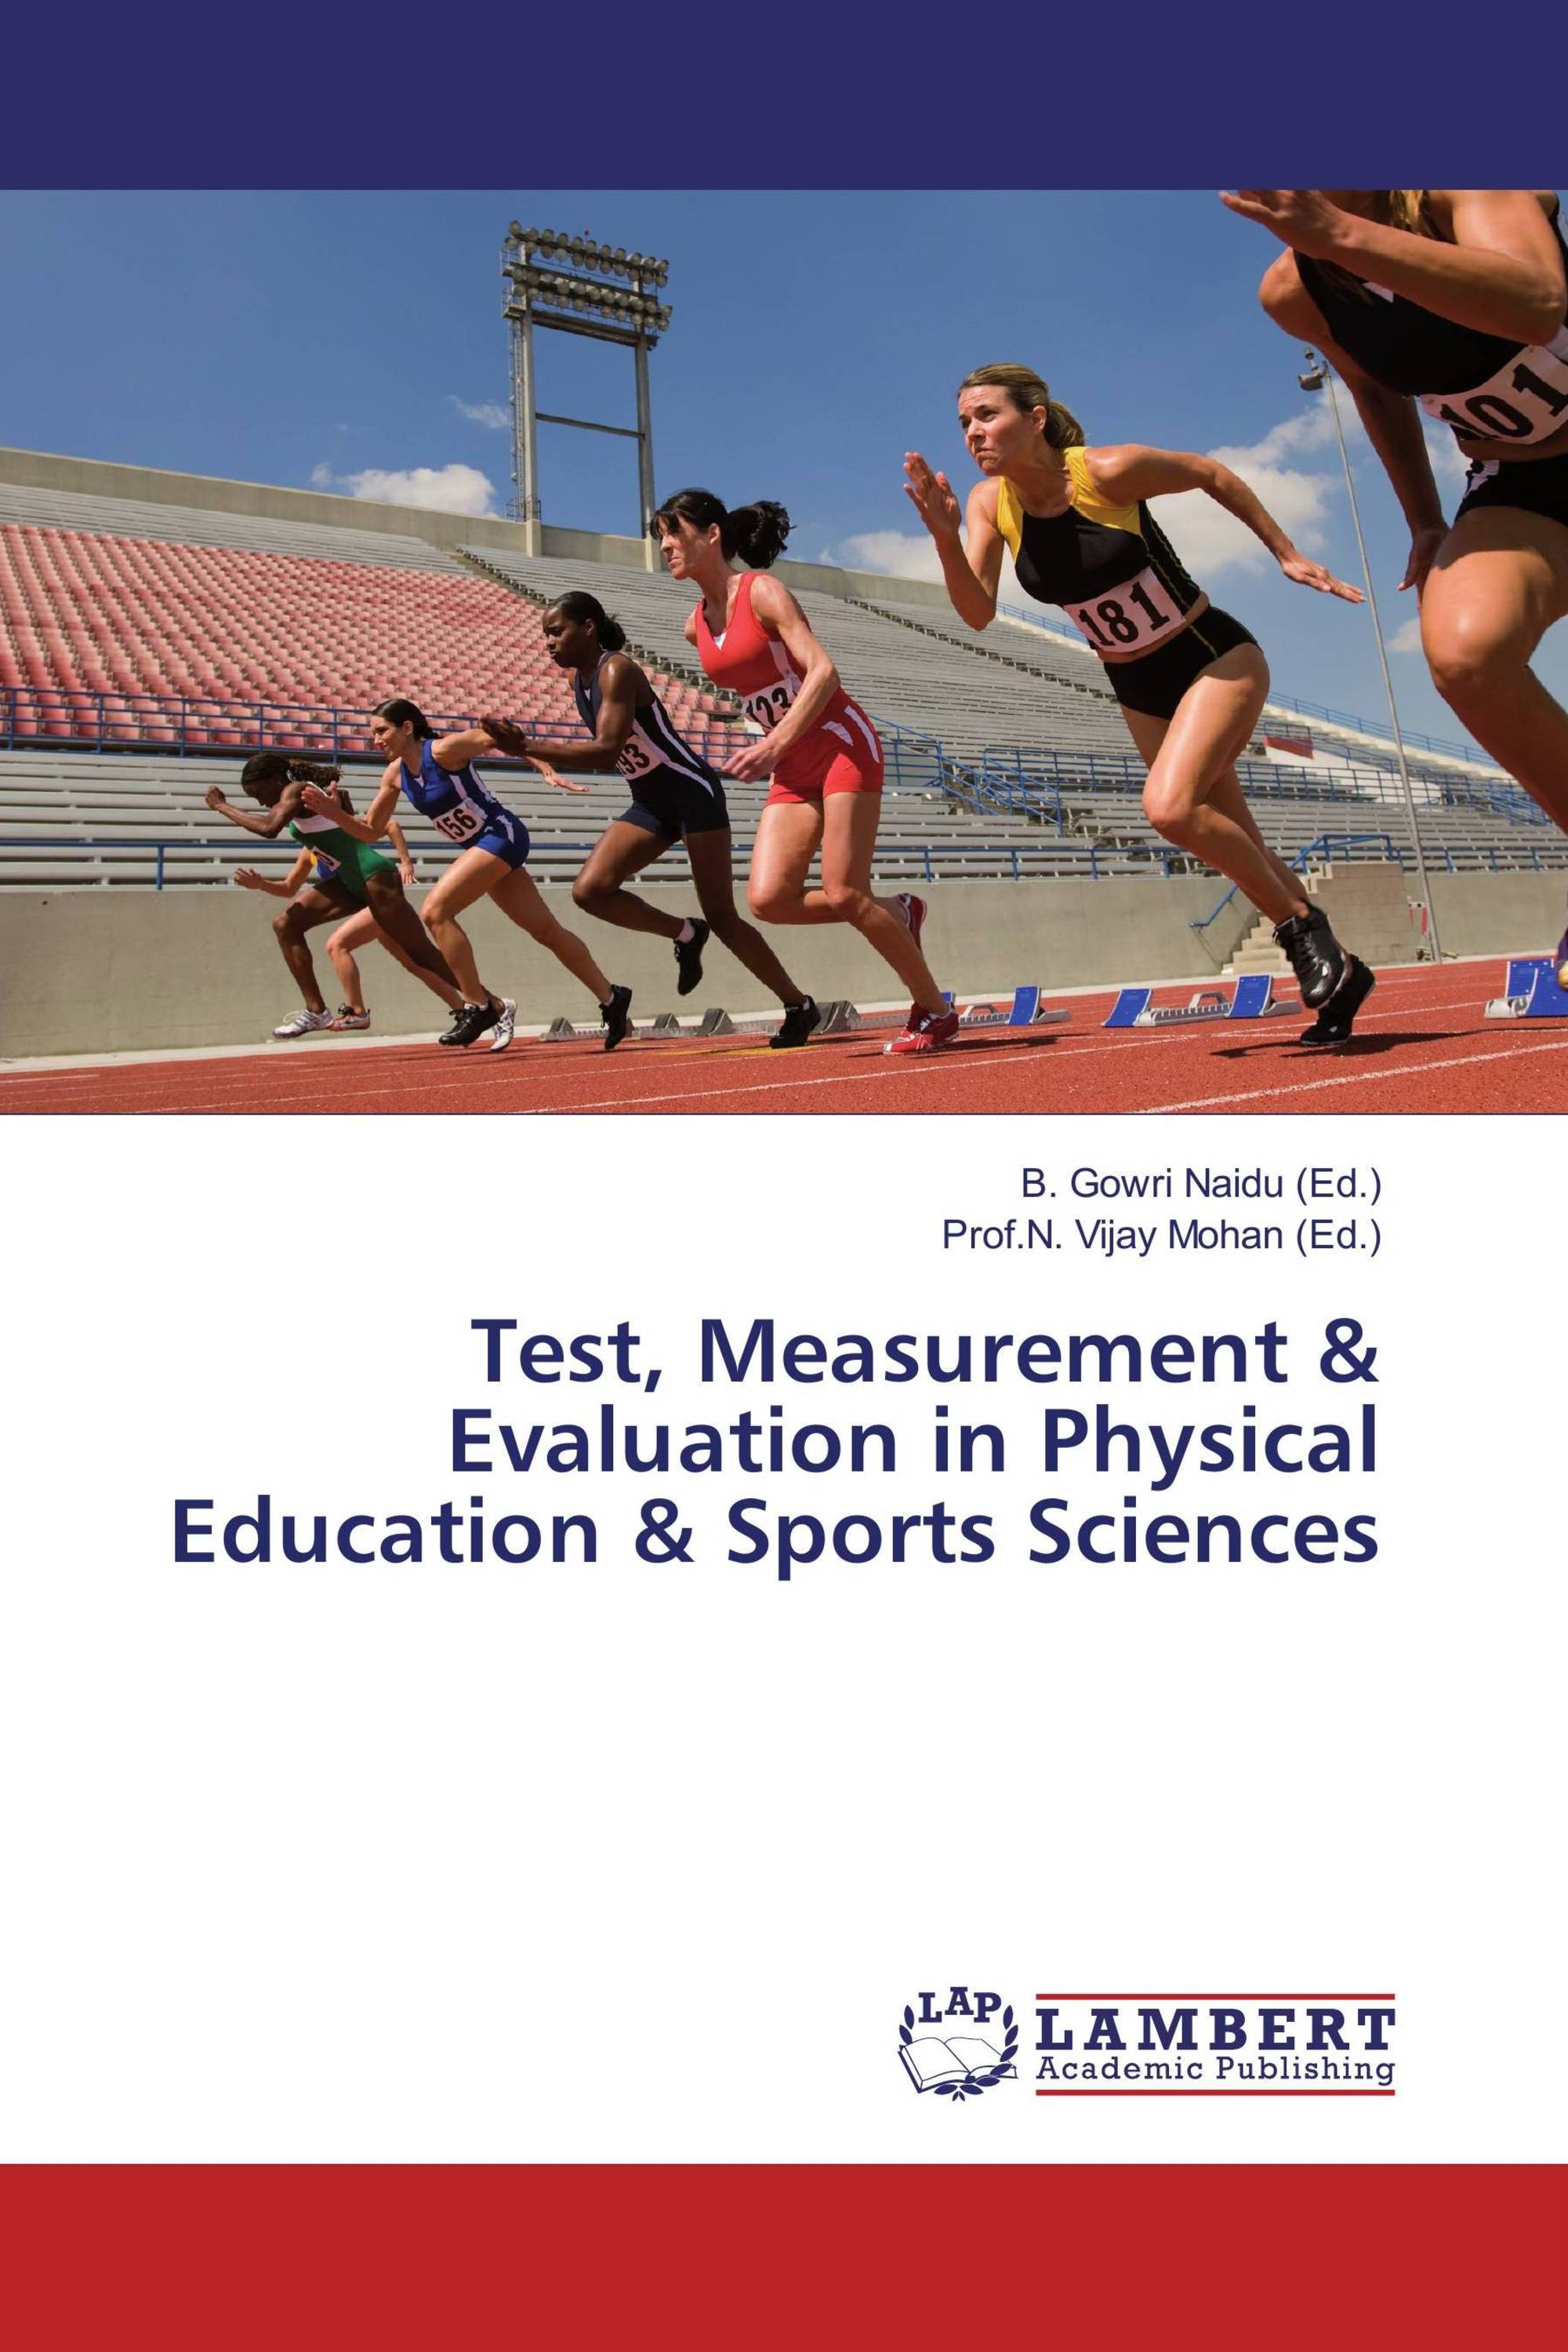 Phd thesis on physical education